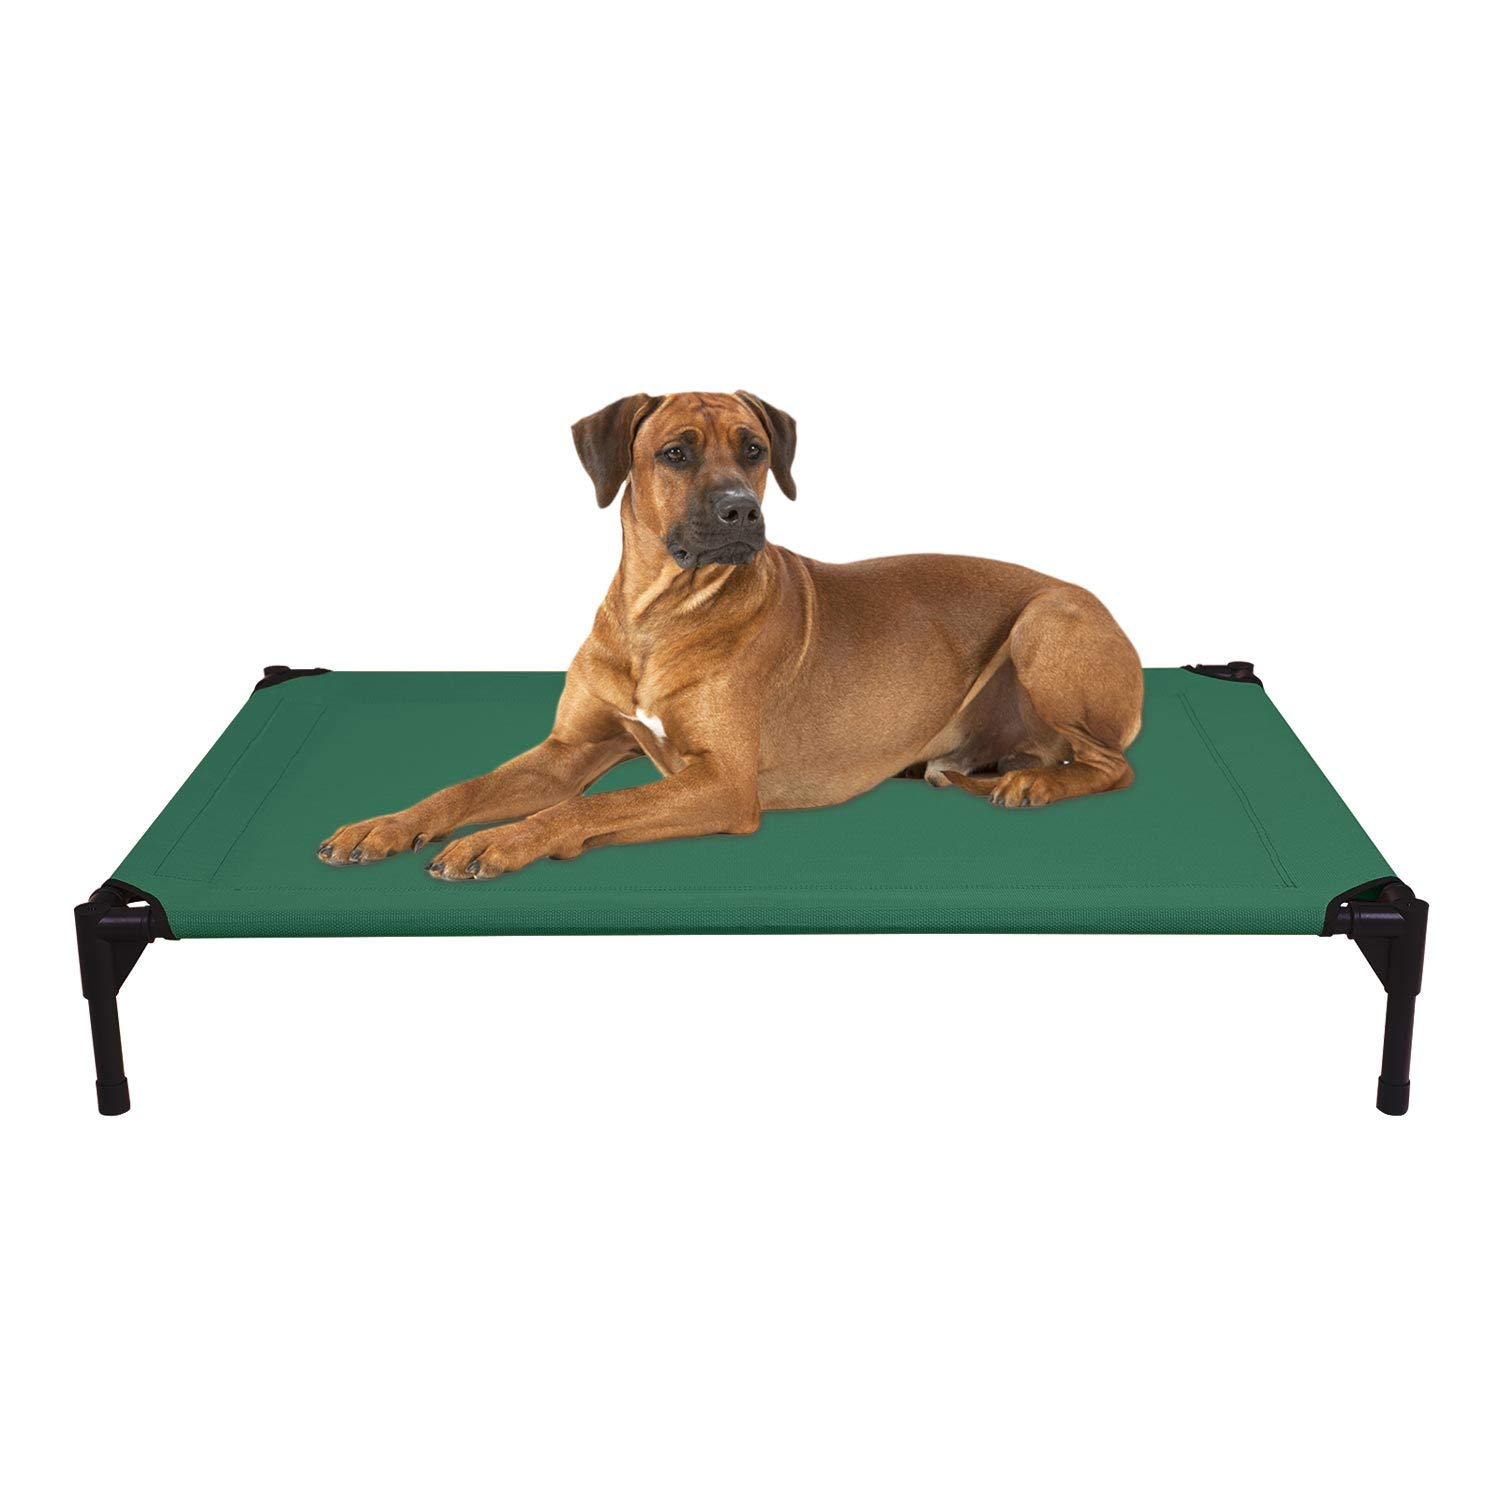 Veehoo Cooling Elevated Dog Bed - Portable Raised Pet Cot with Washable & Breathable Mesh, No-Slip Rubber Feet for Indoor & Outdoor Use, Oversize Package, Large | Green